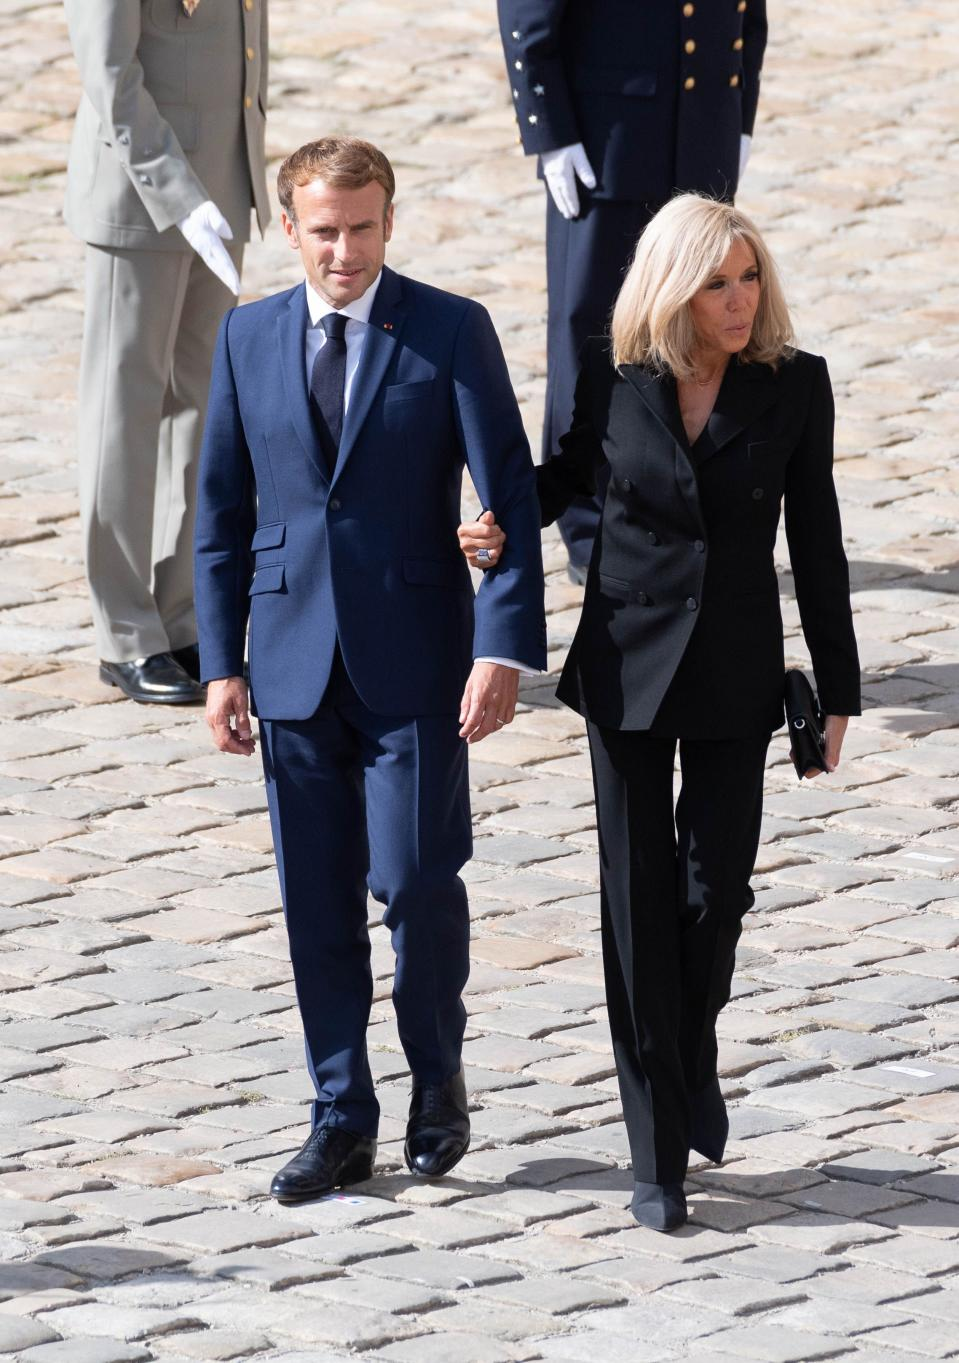 French President Emmanuel Macron (left) and his wife Brigitte Macron during the national tribute ceremony for deceased French actor Jean-Paul Belmondo at the monument of the Hôtel des Invalides in Paris on September 9, 2021. - Credit: Jacques WITT / SIPA